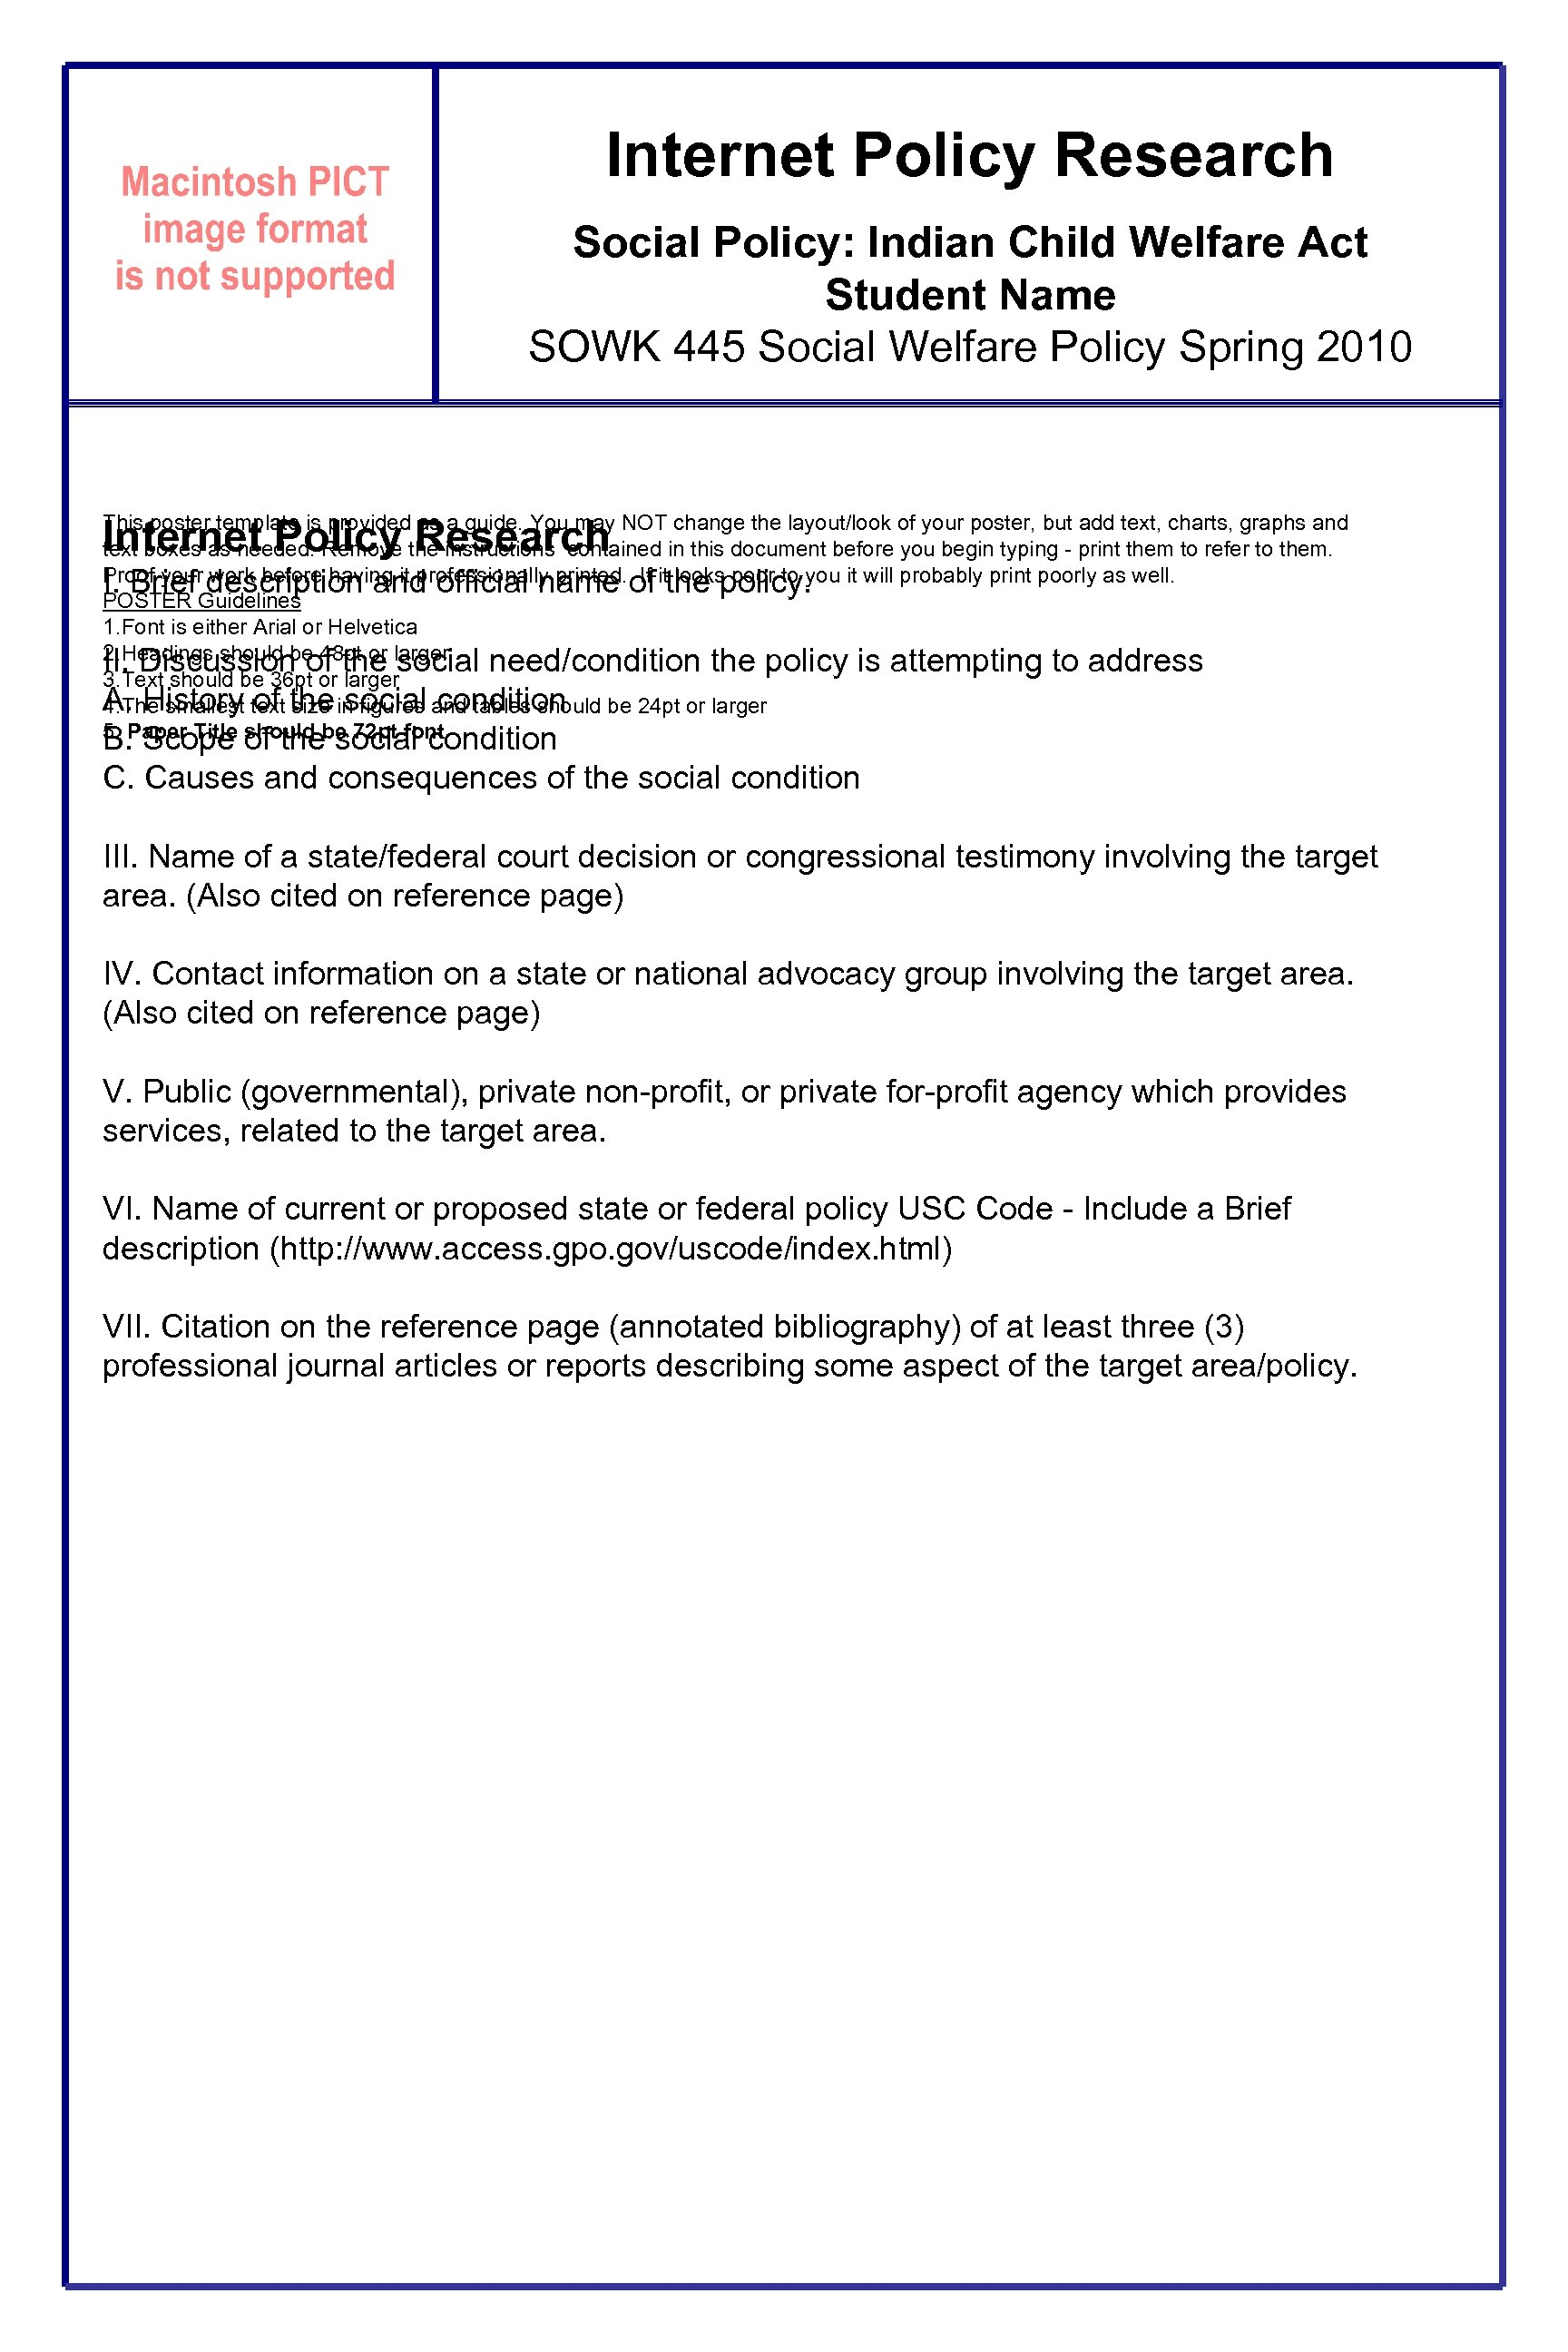 Internet Policy Research Social Policy: Indian Child Welfare Act Student Name SOWK 445 Social